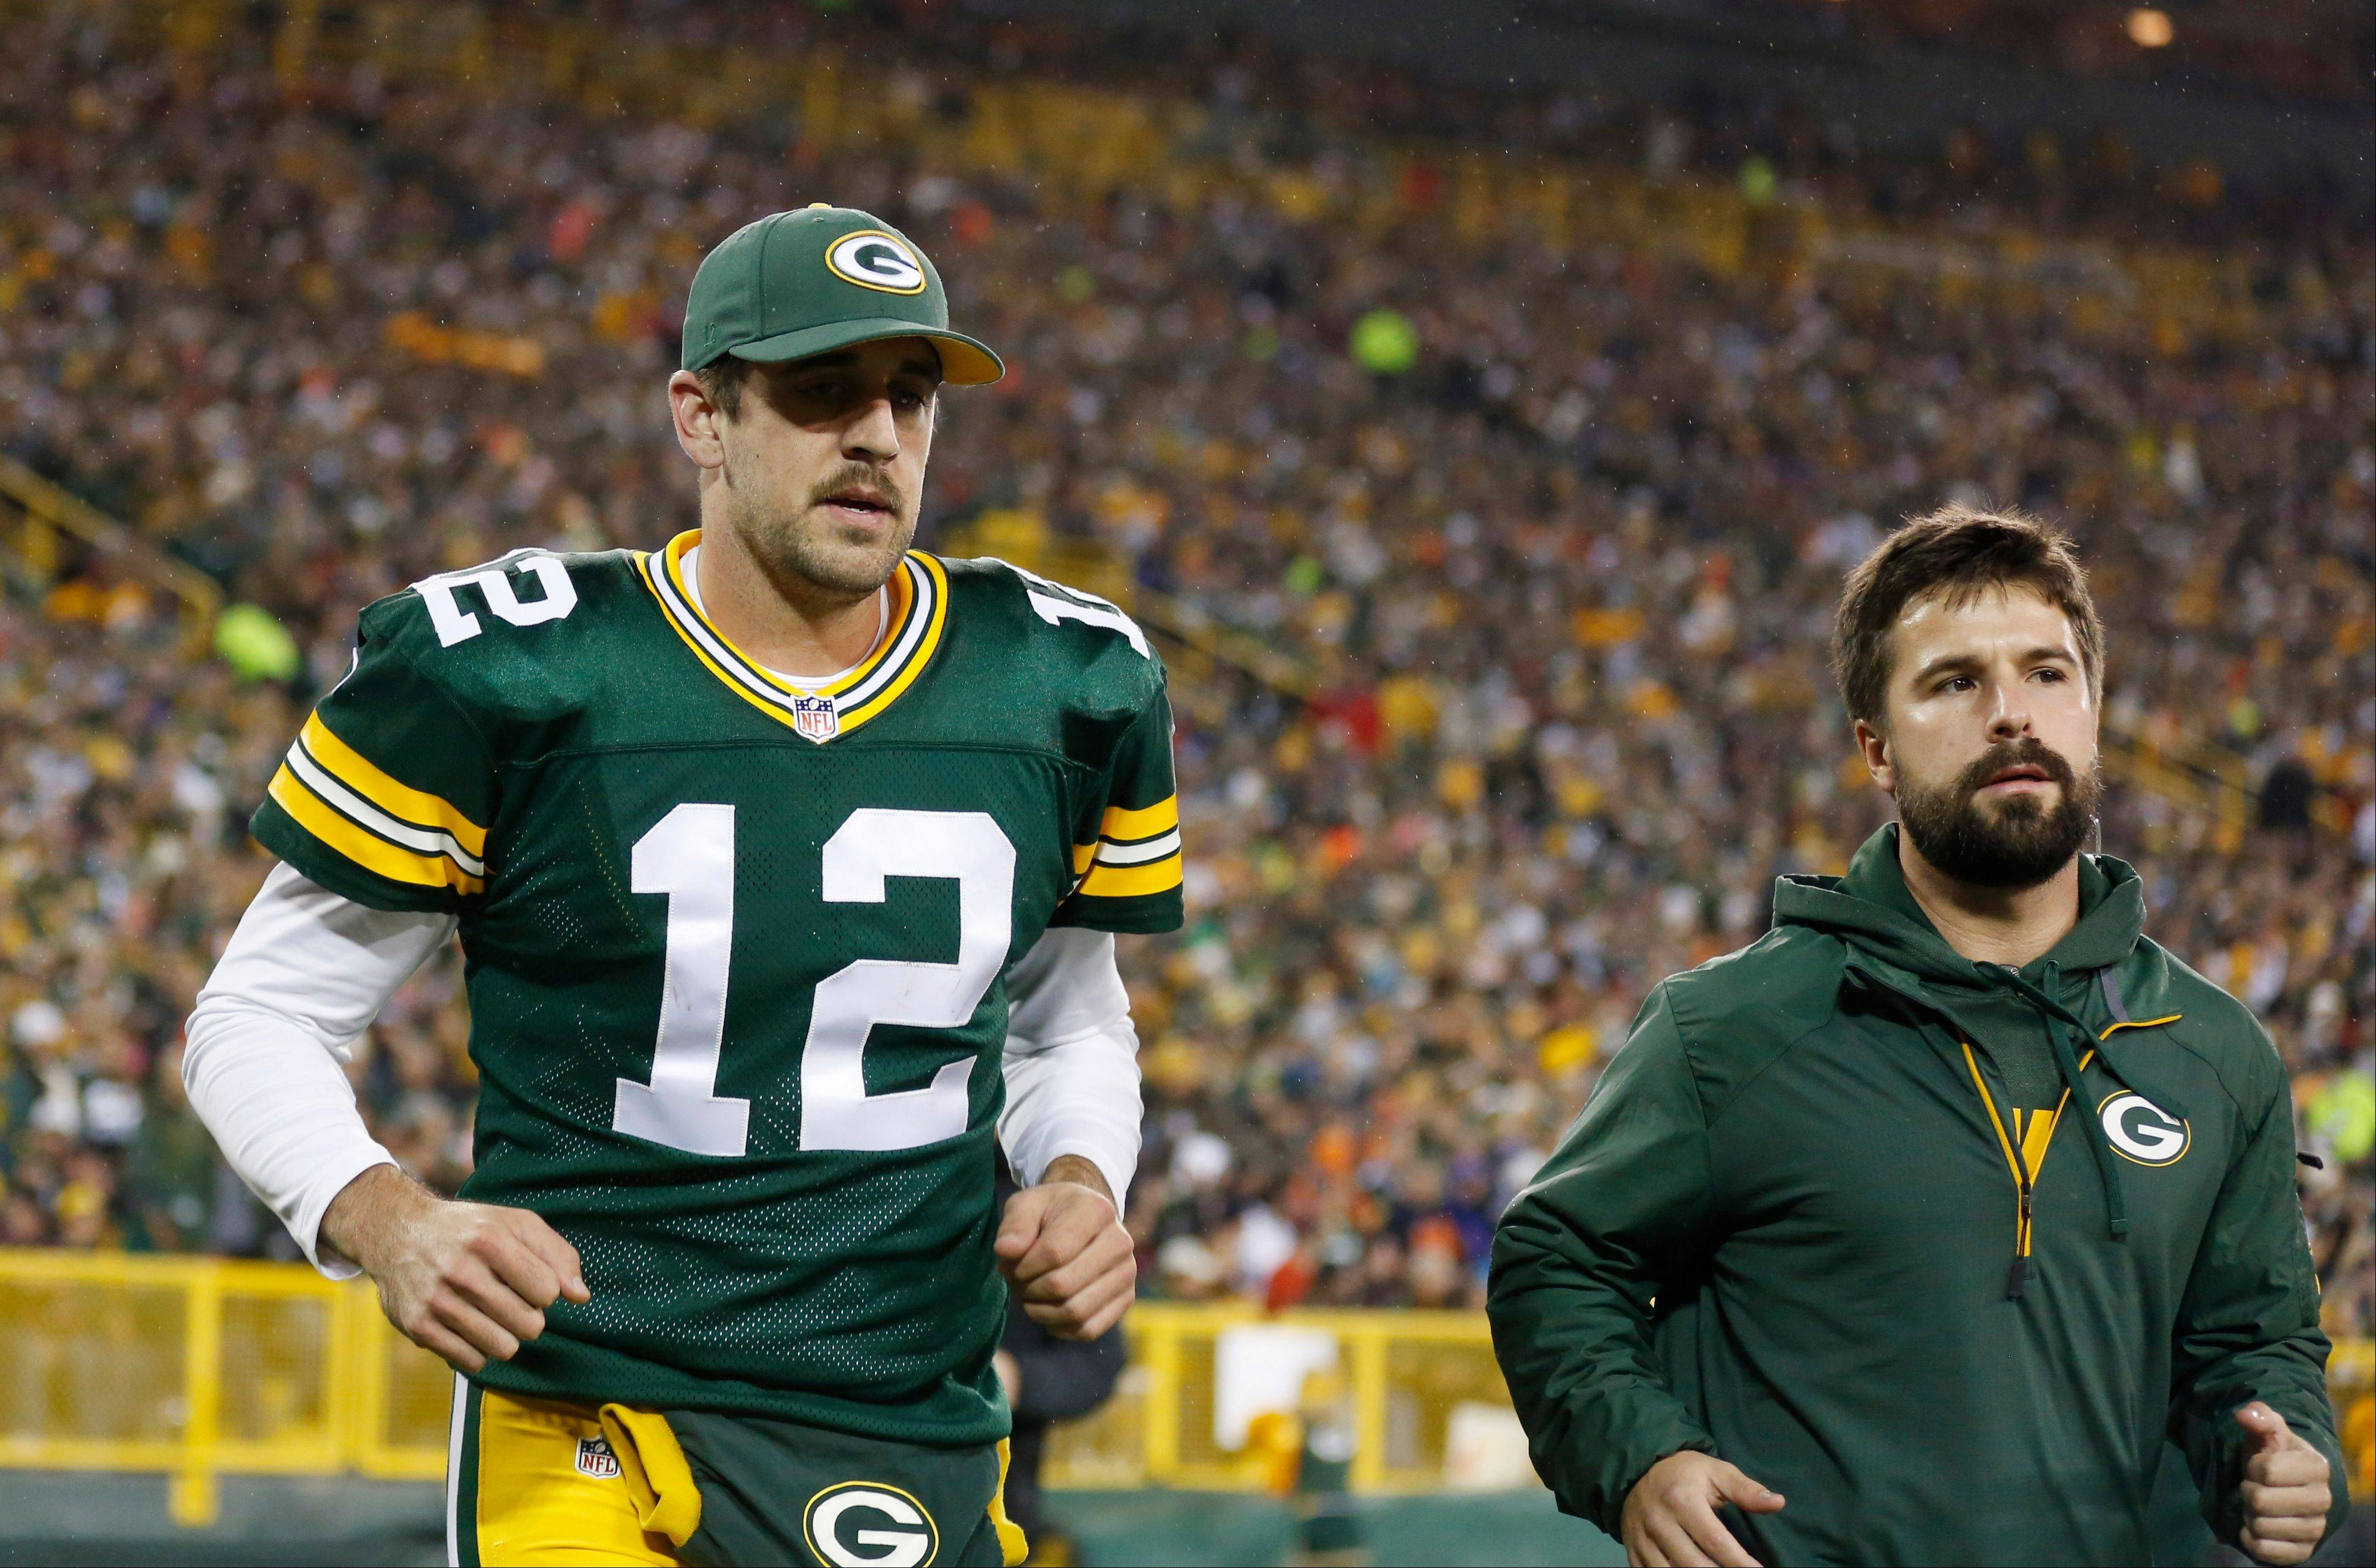 Green Bay Packers' Aaron Rodgers heads to the locker room after being hurt during the first half .